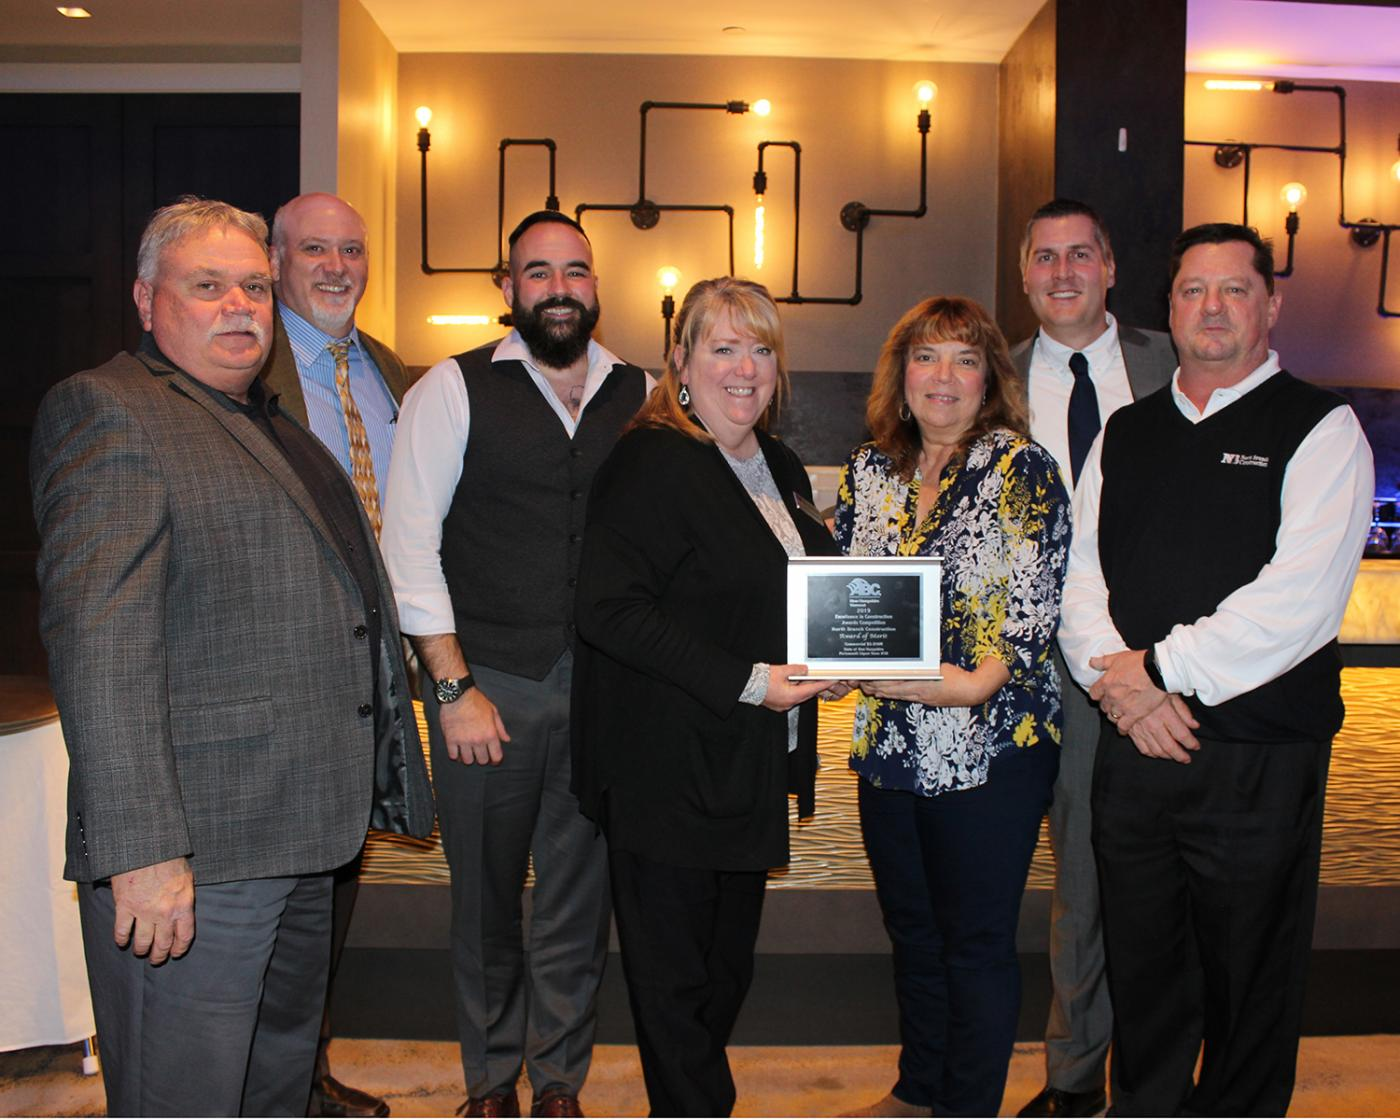 North Branch Receives Award at ABC's 2019 Excellence in Construction Dinner